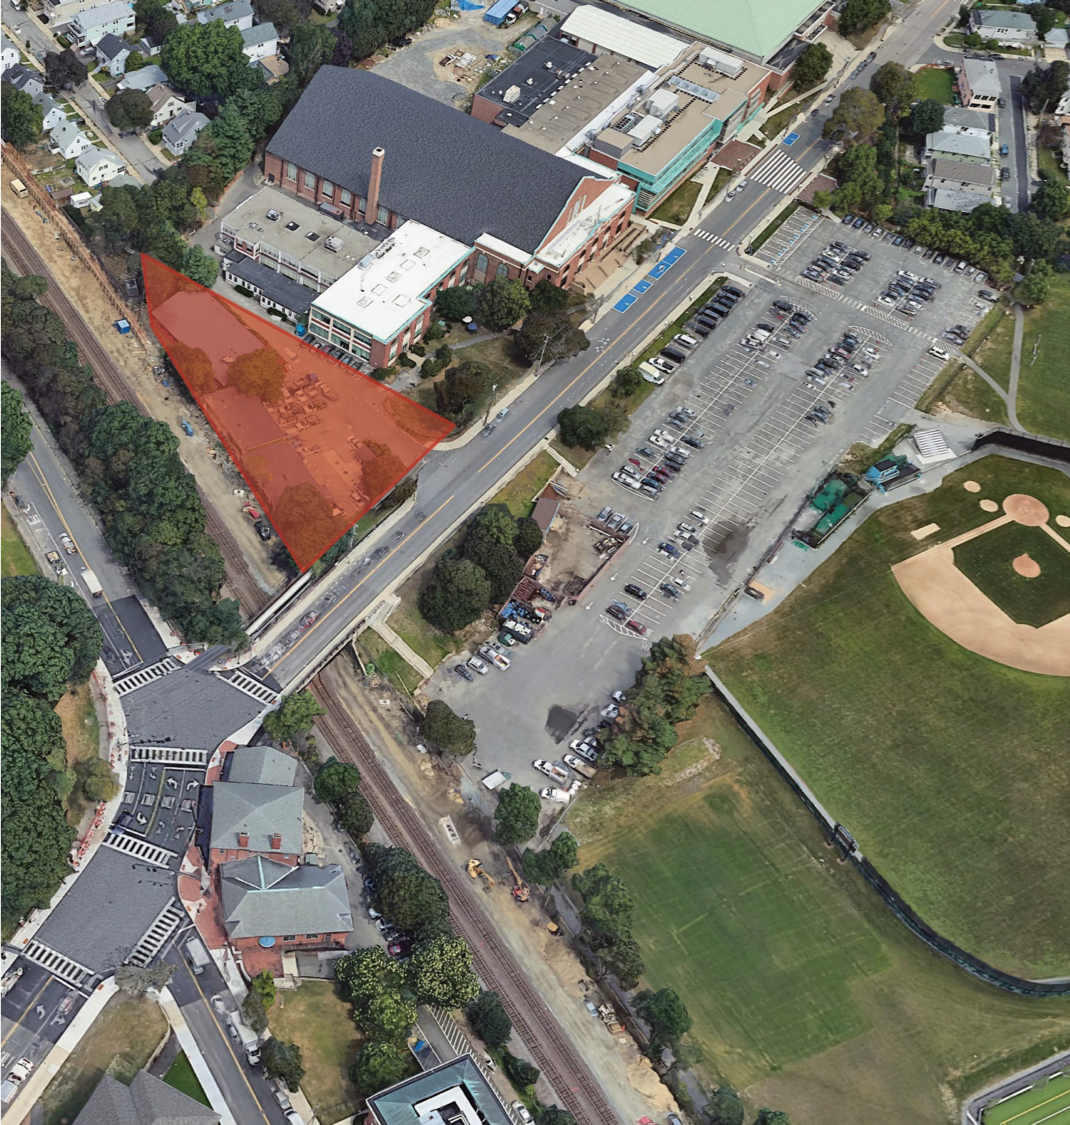 Aerial photo of the location of the new cummings building at the intersection of Boston and College Avenues.